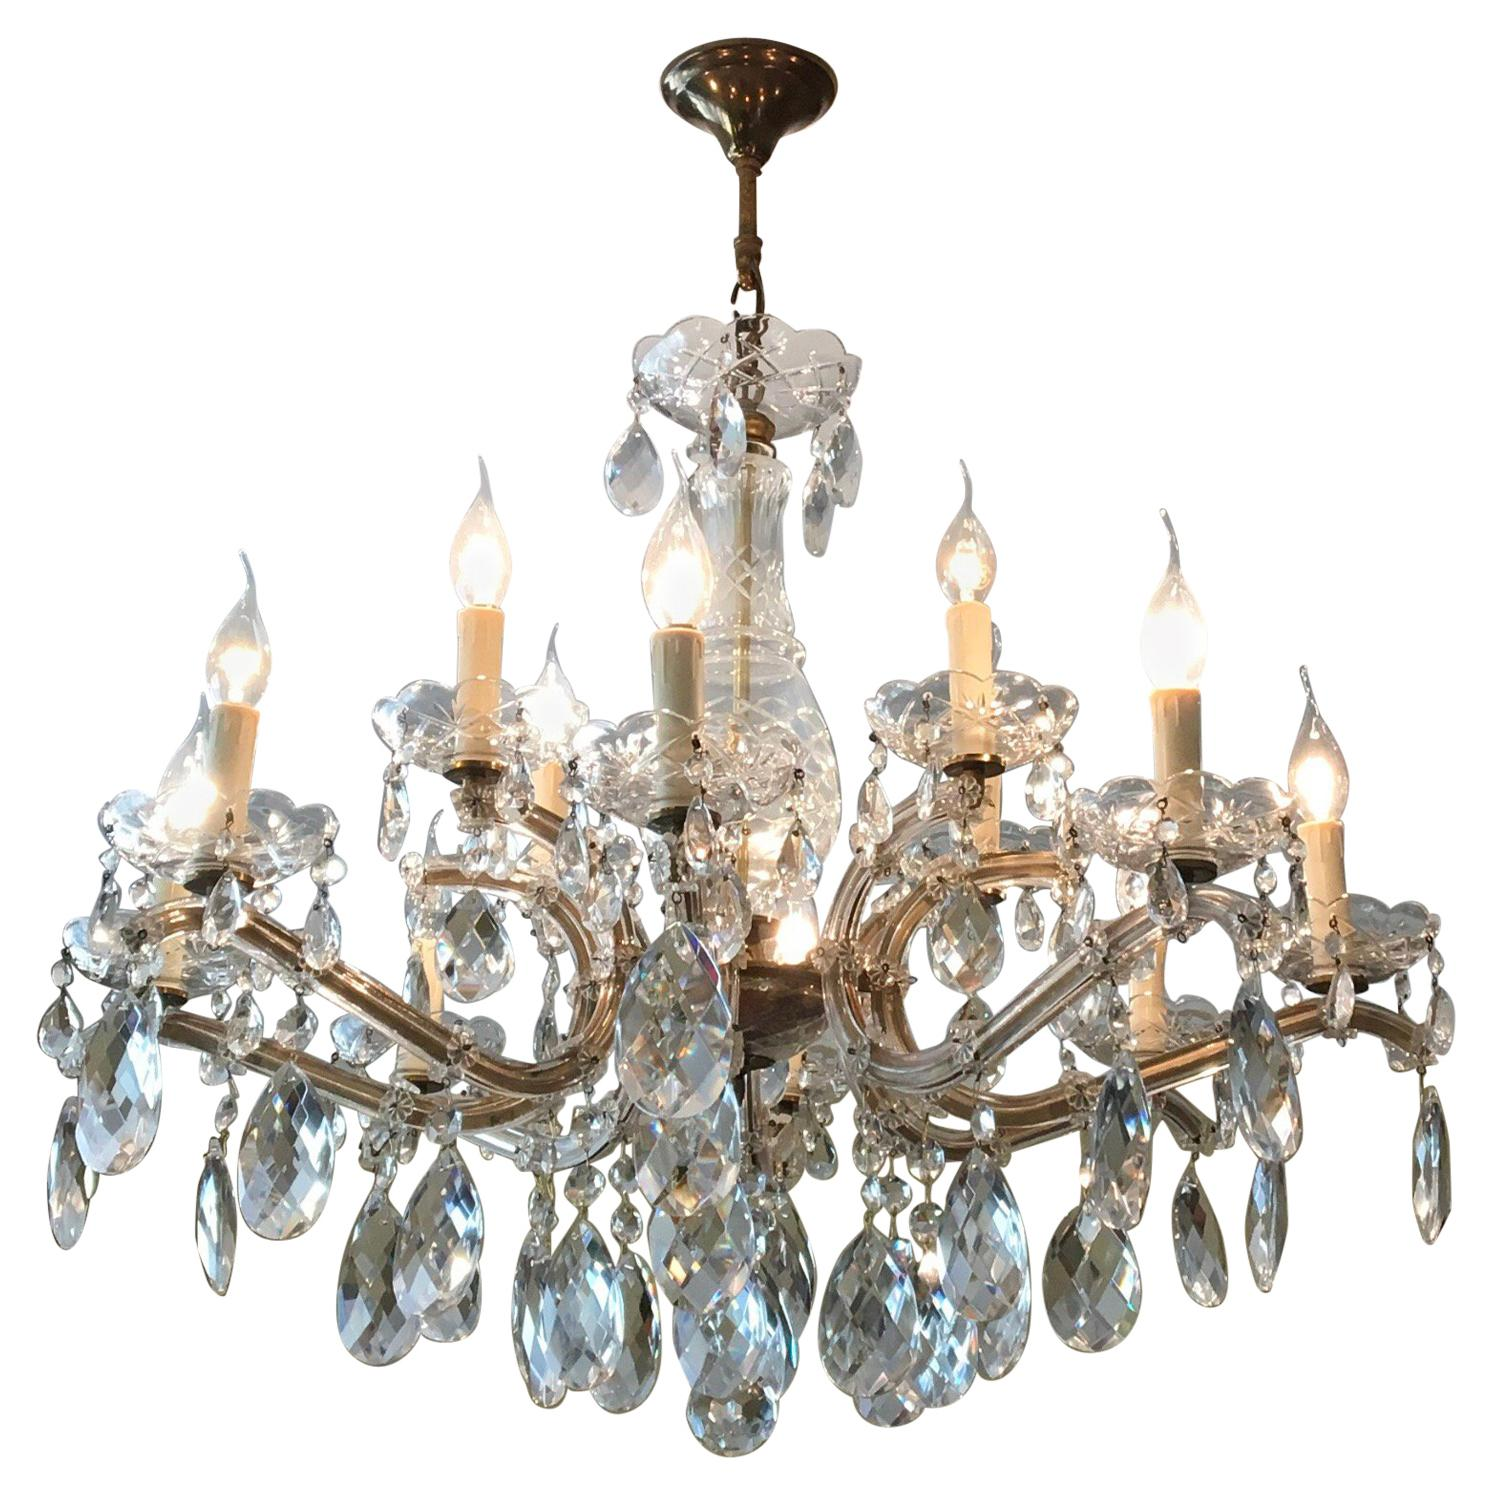 Crystal Chandelier Maria Theresa Style with 12 Lights , Mid-20th Century